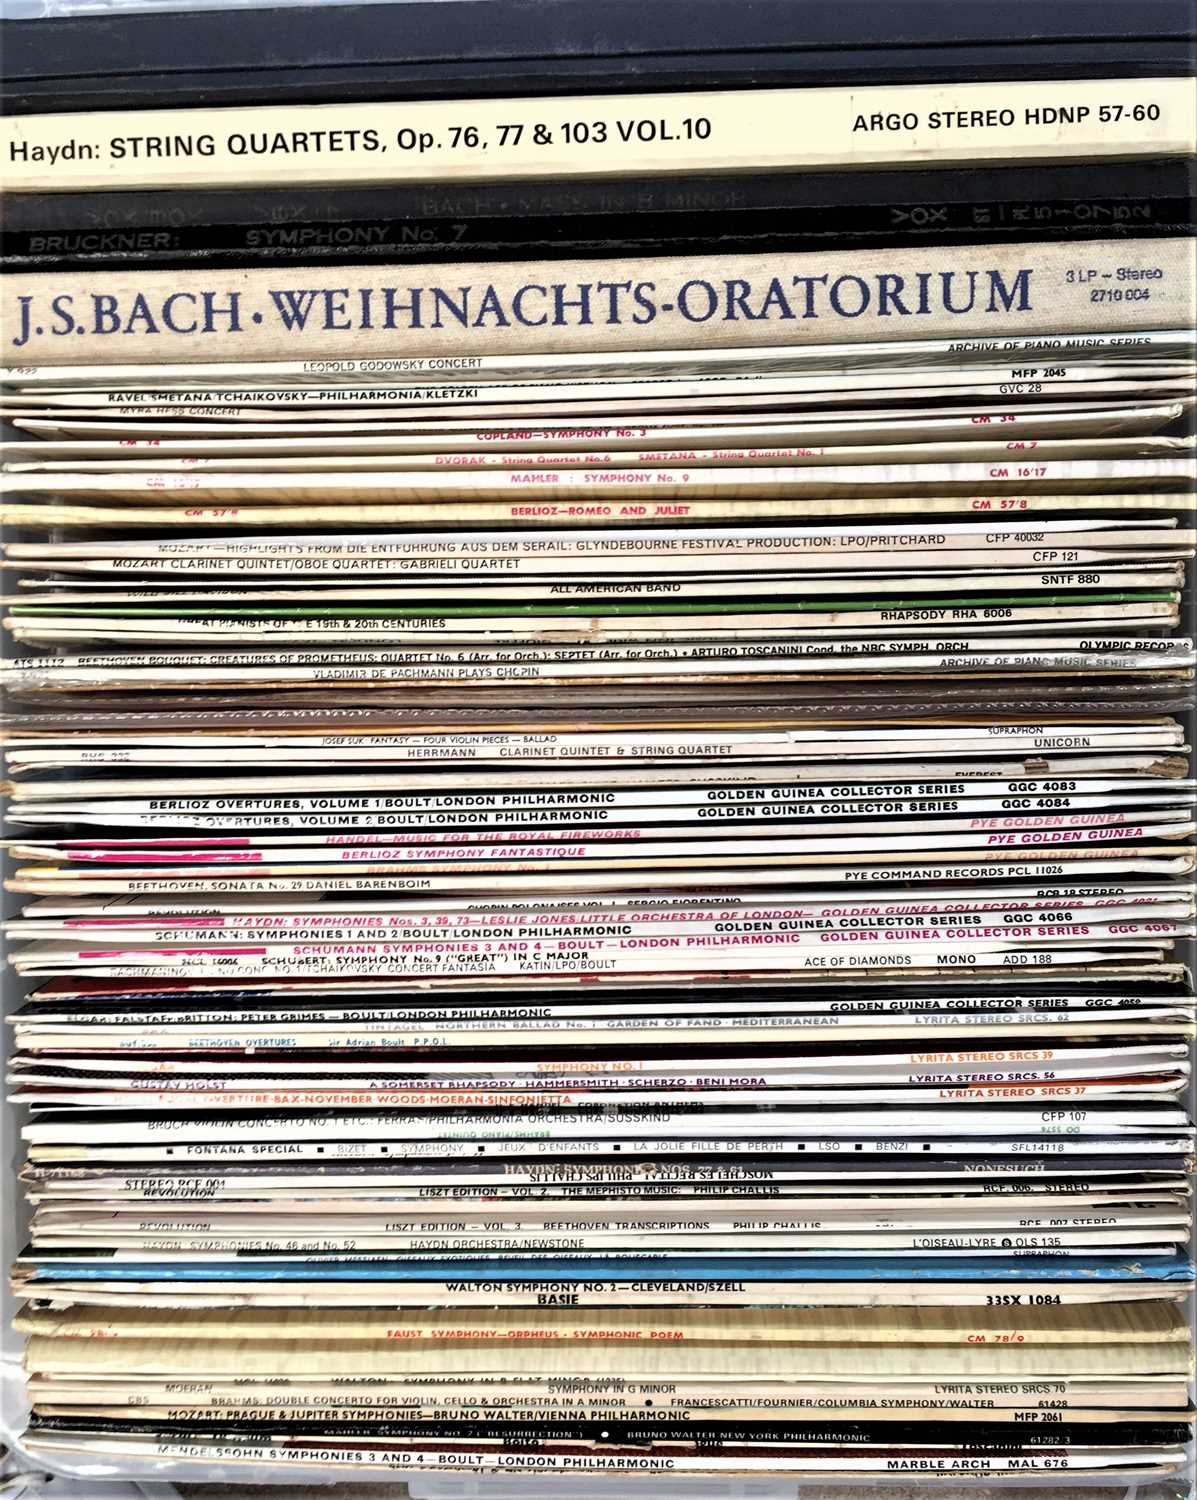 CLASSICAL - LP COLLECTION - Image 3 of 7